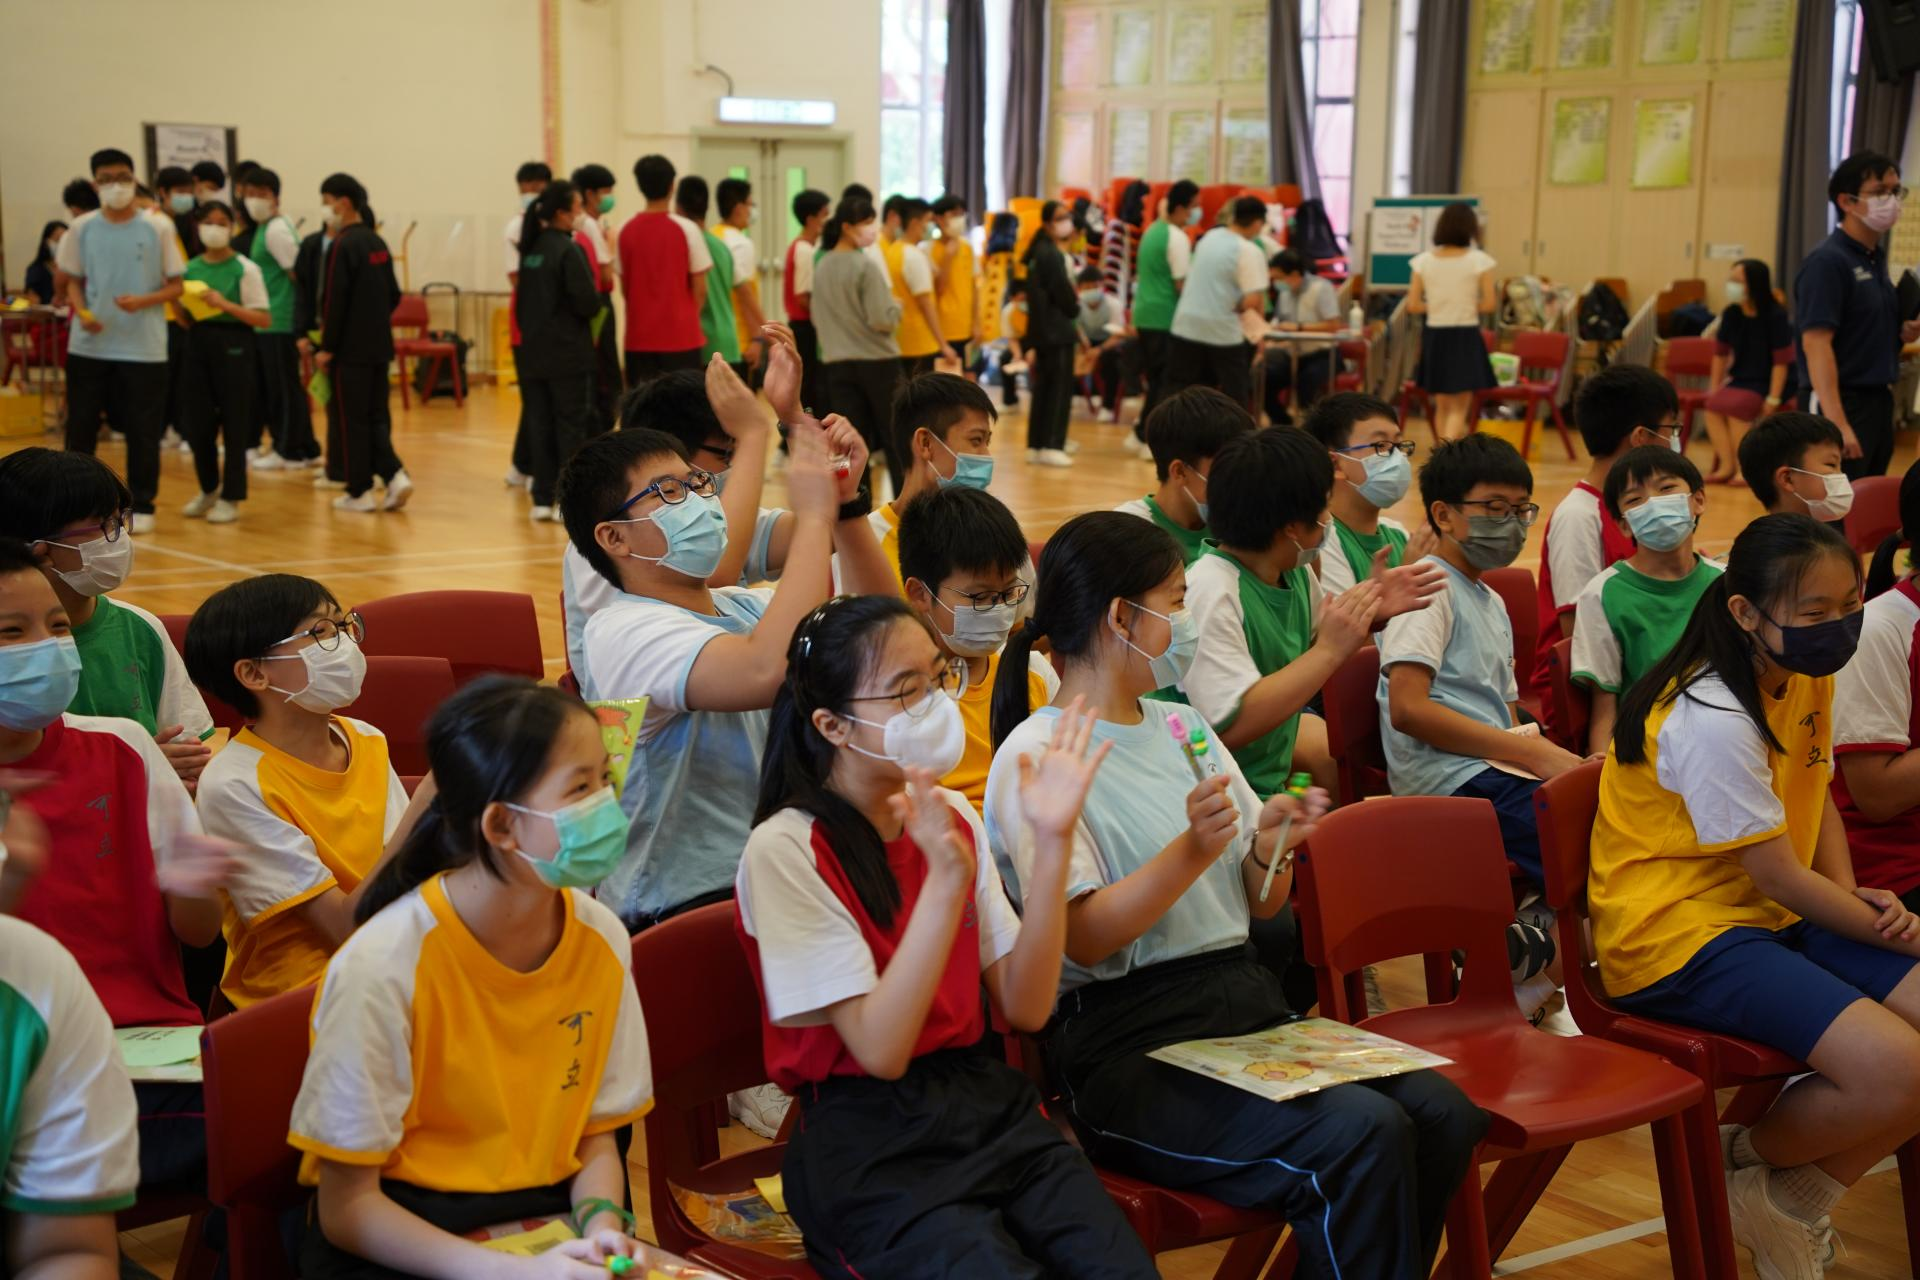 Students cheered for their classmates excitedly